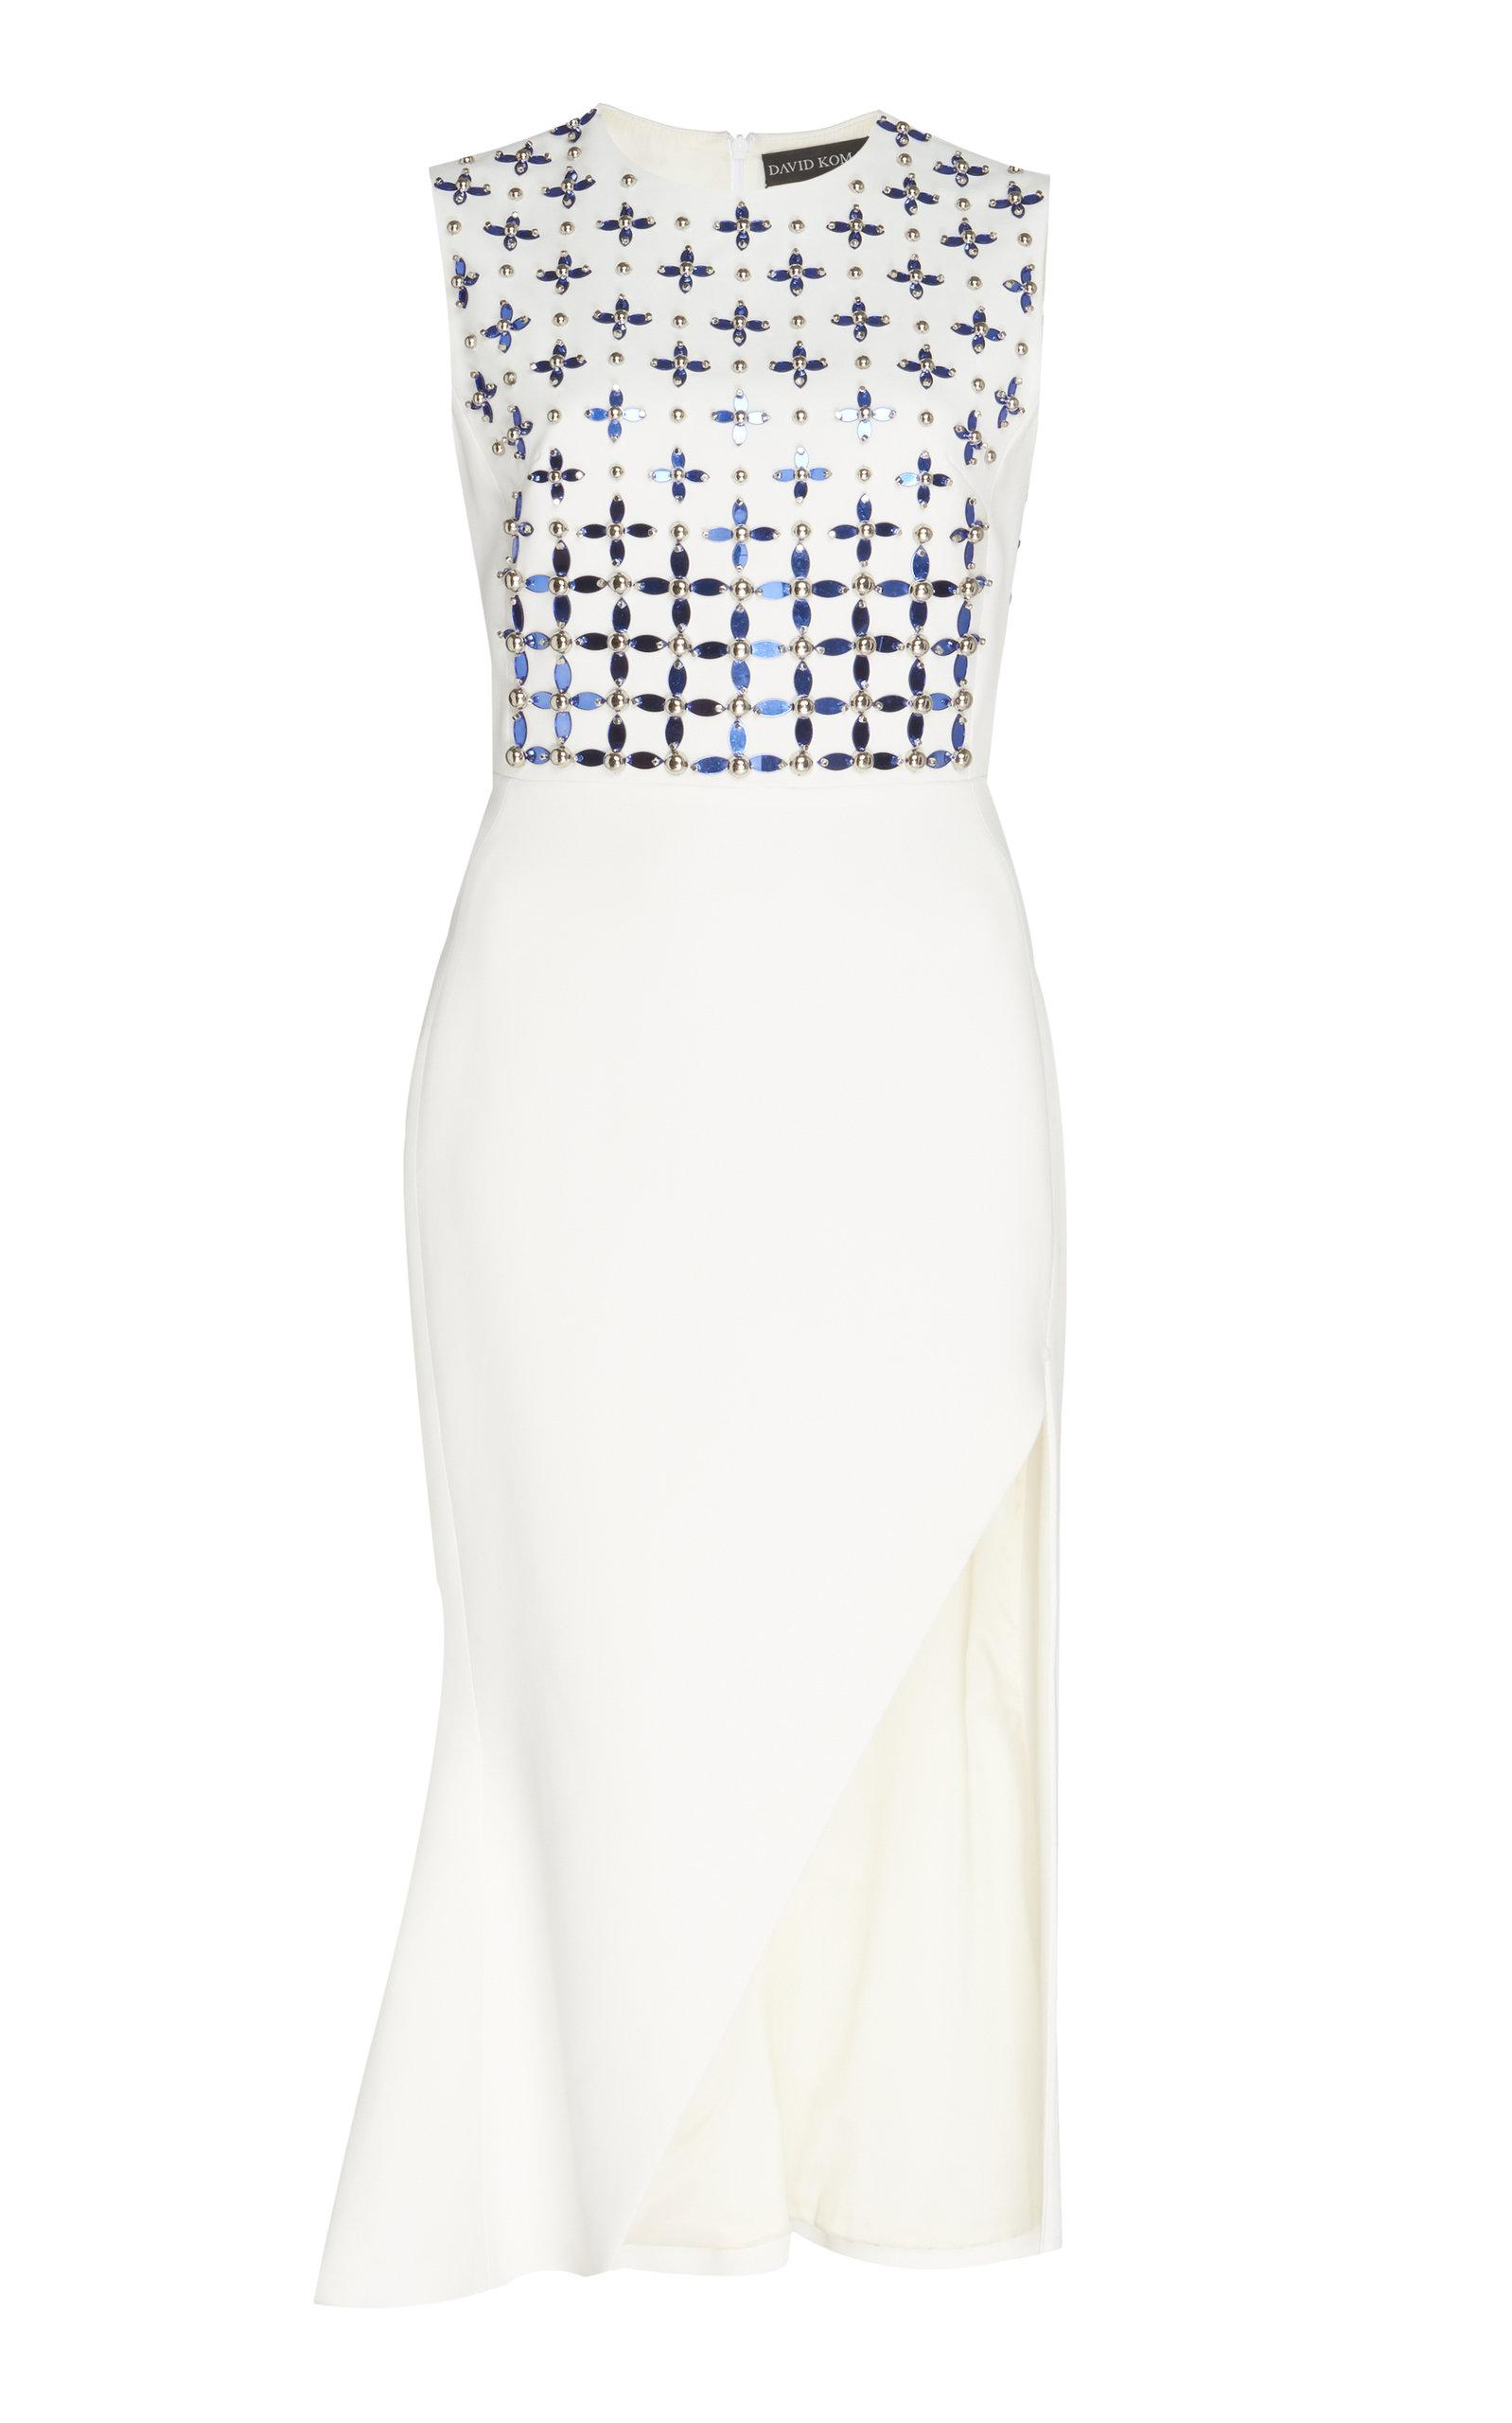 841d910e767 David Koma Floral Embroidered Flounce Dress In White